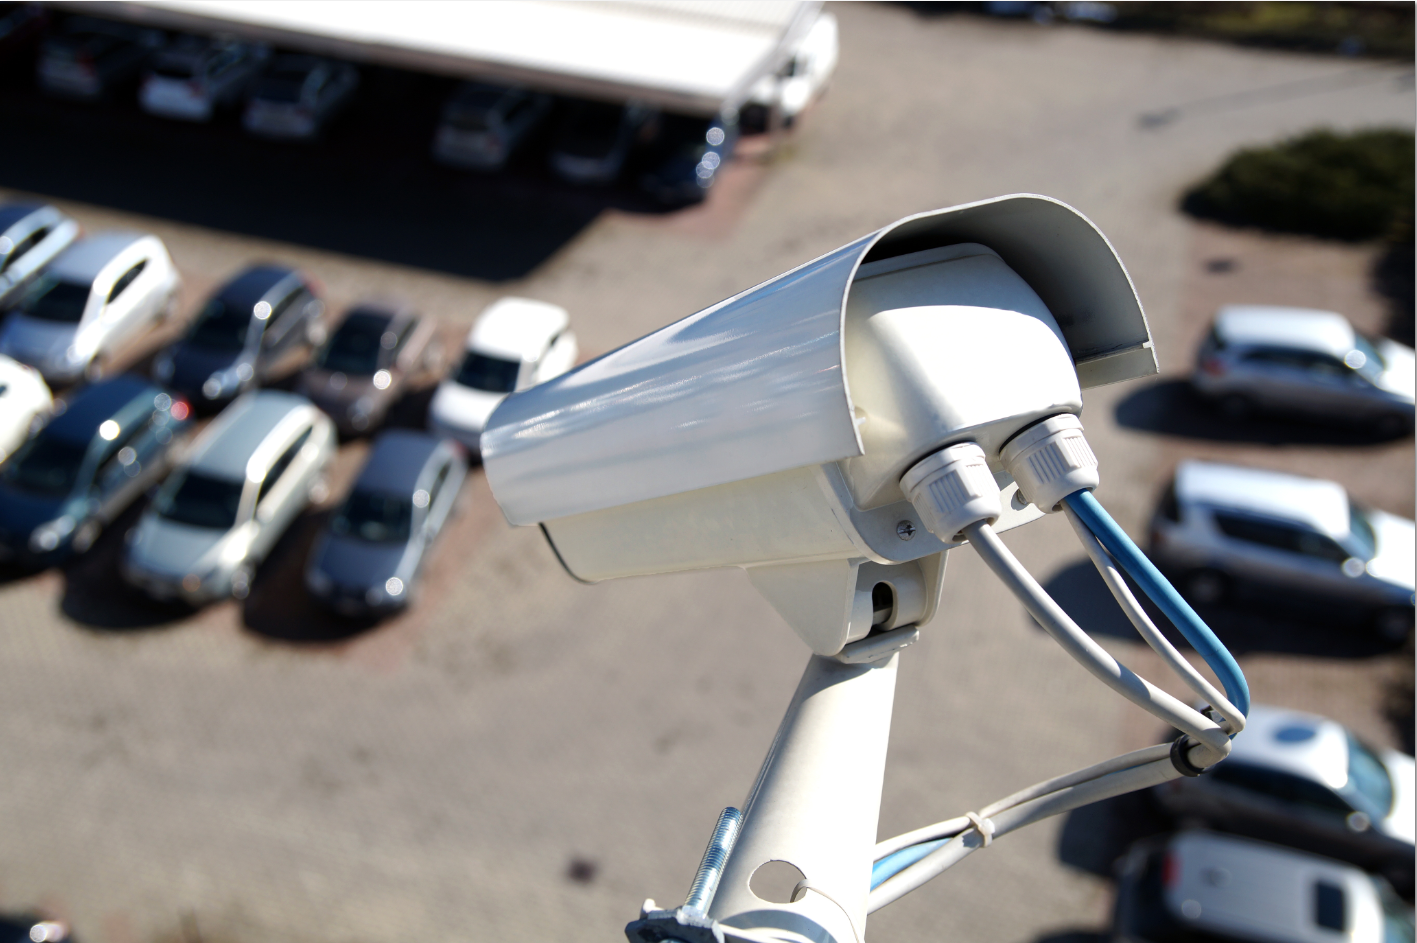 Security Camera Service in Eastvale